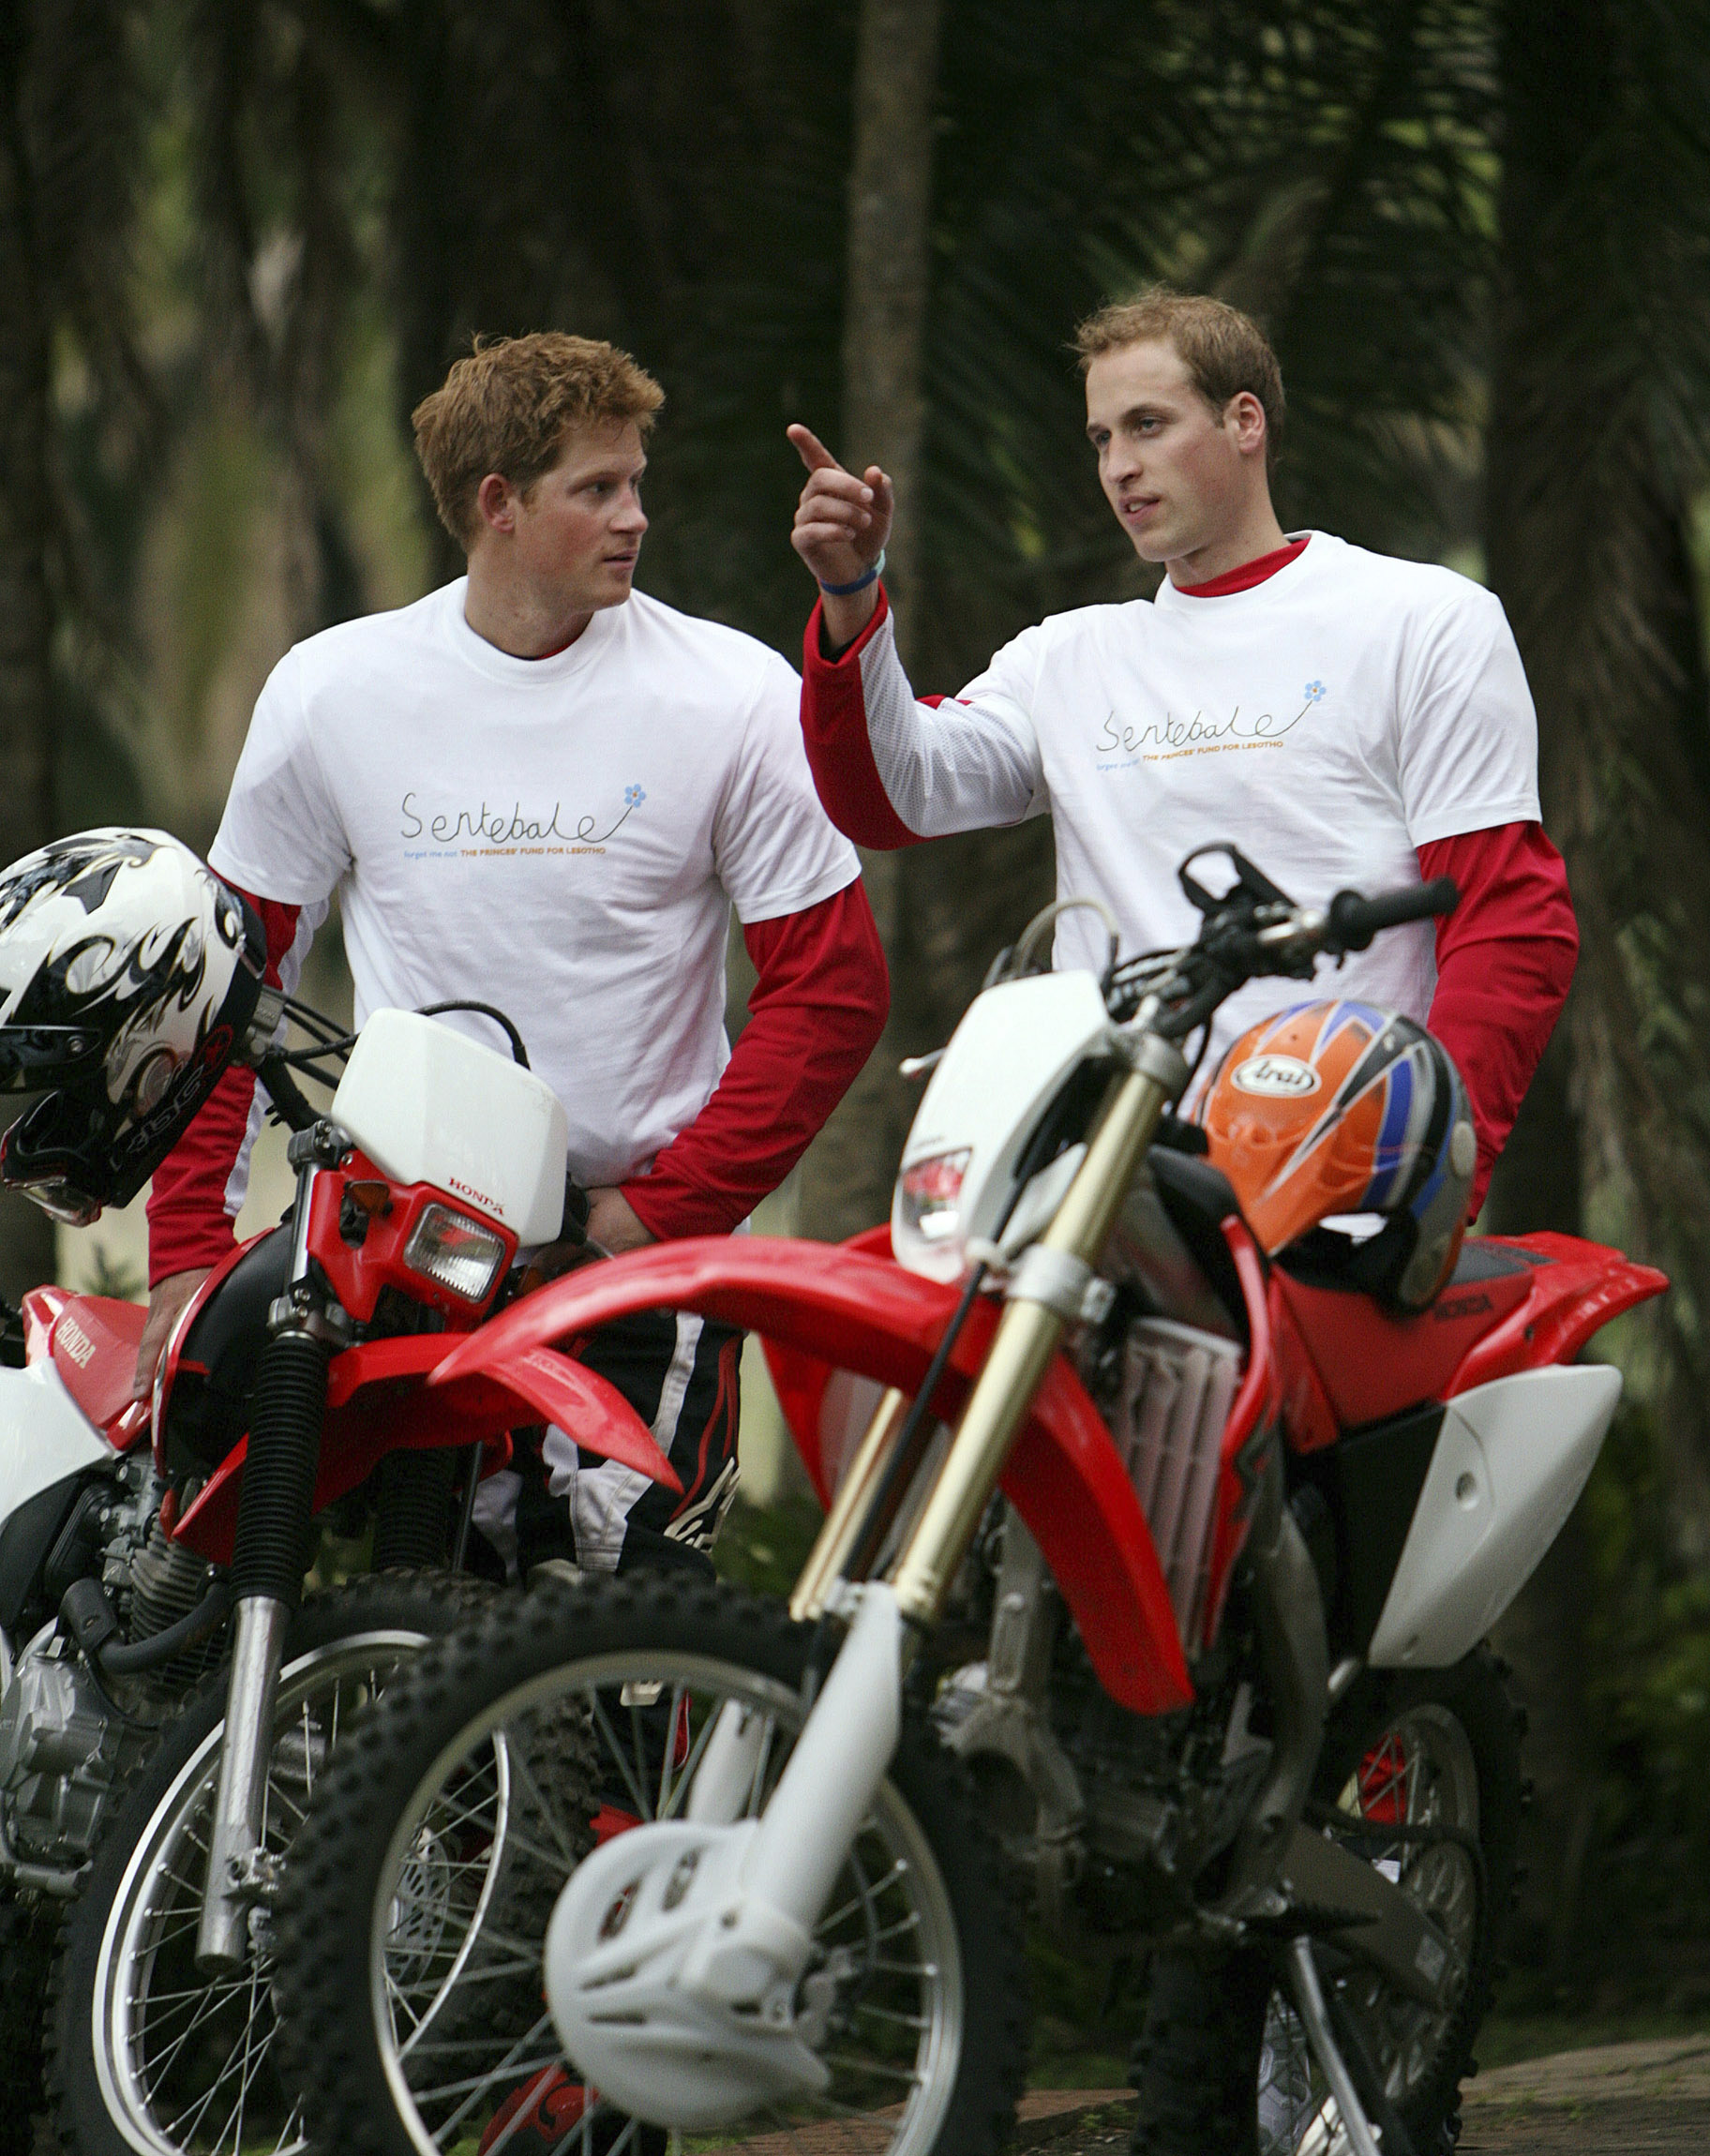 Prince William and Prince Harry stand with their motorcycles before the start of the Enduro Africa 08 charity motorcycle ride in Port Edward, about 93 miles) southwest of Durban on Oct. 17, 2008.